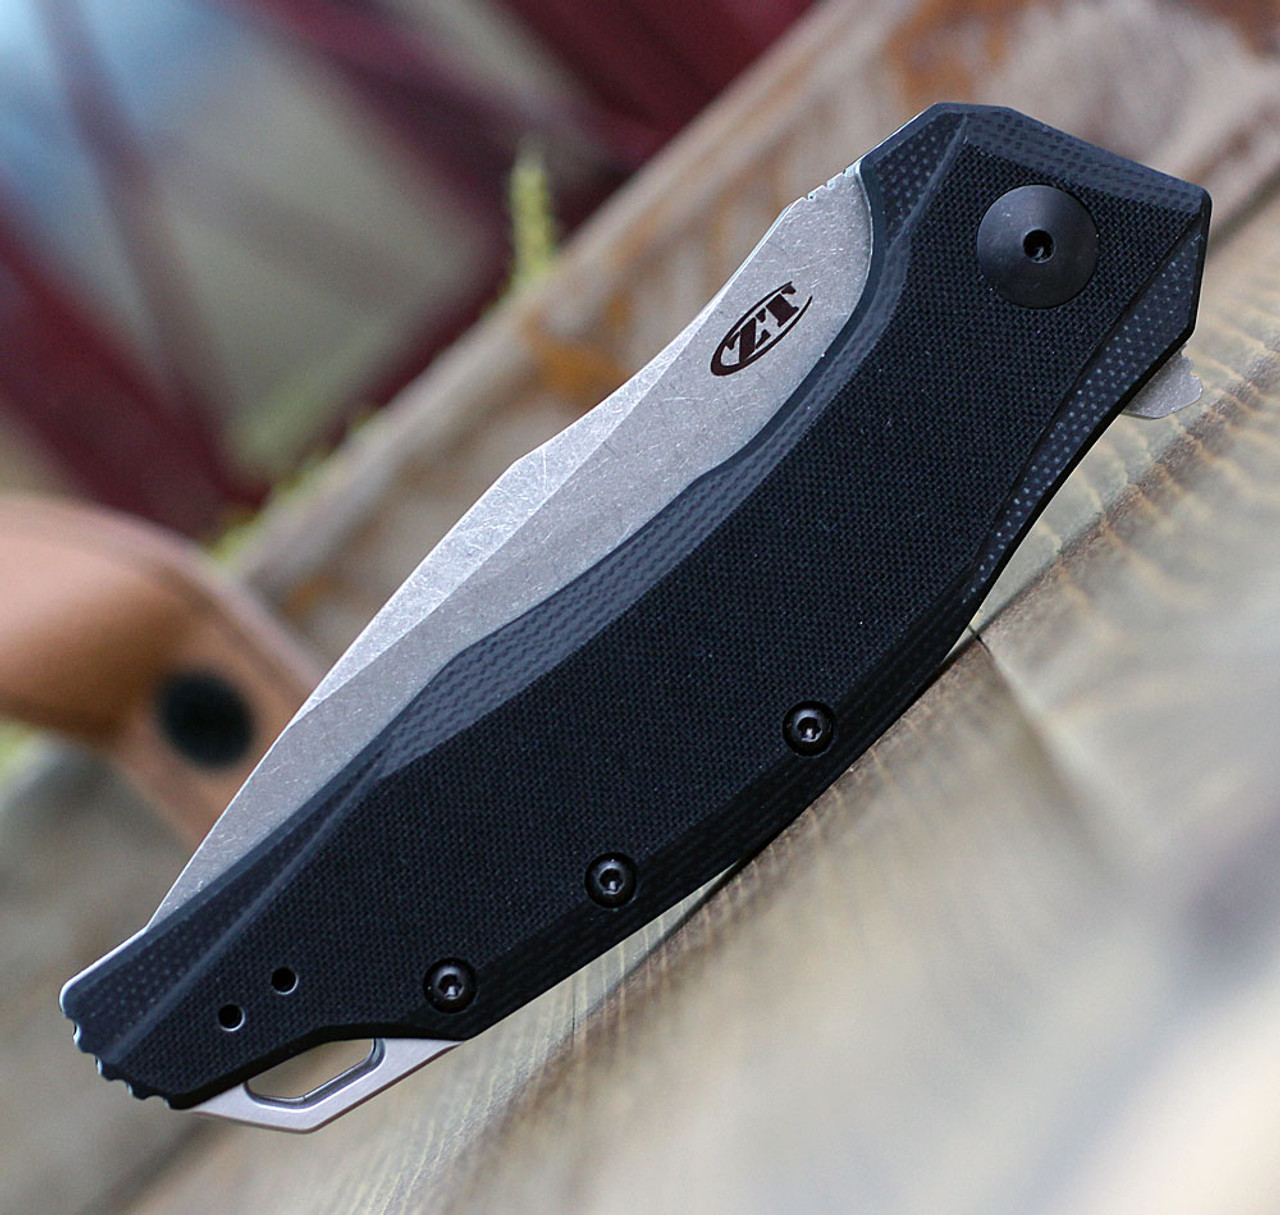 "Zero Tolerance 0357 Assited Open, 3.25"" CPM 20CV Working Finish Plain Blade, Black G-10 Handle"